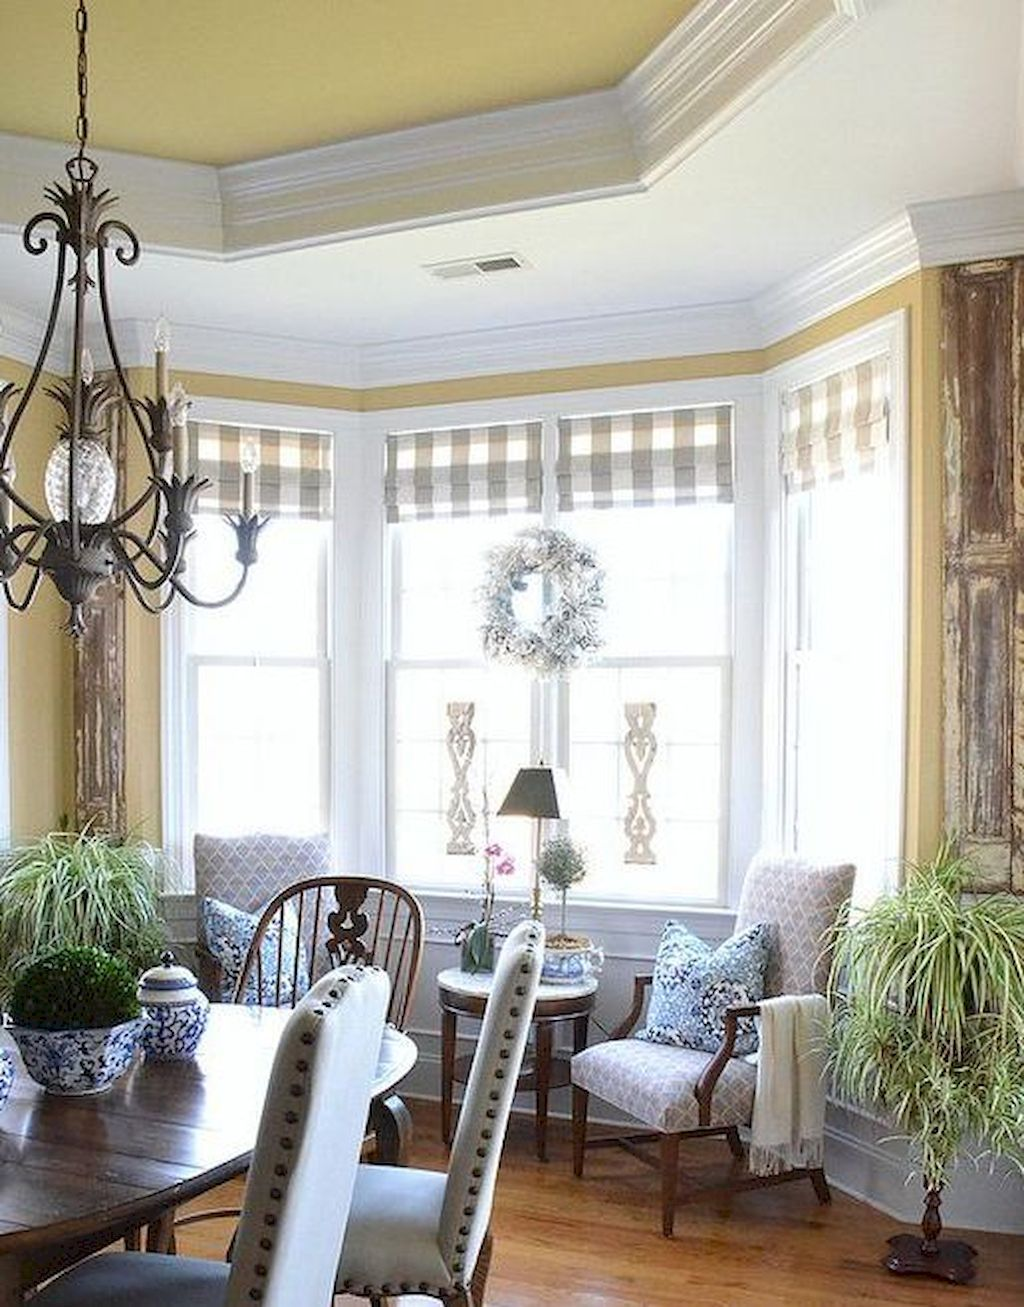 80 Fancy French Country Dining Room Decor Ideas images